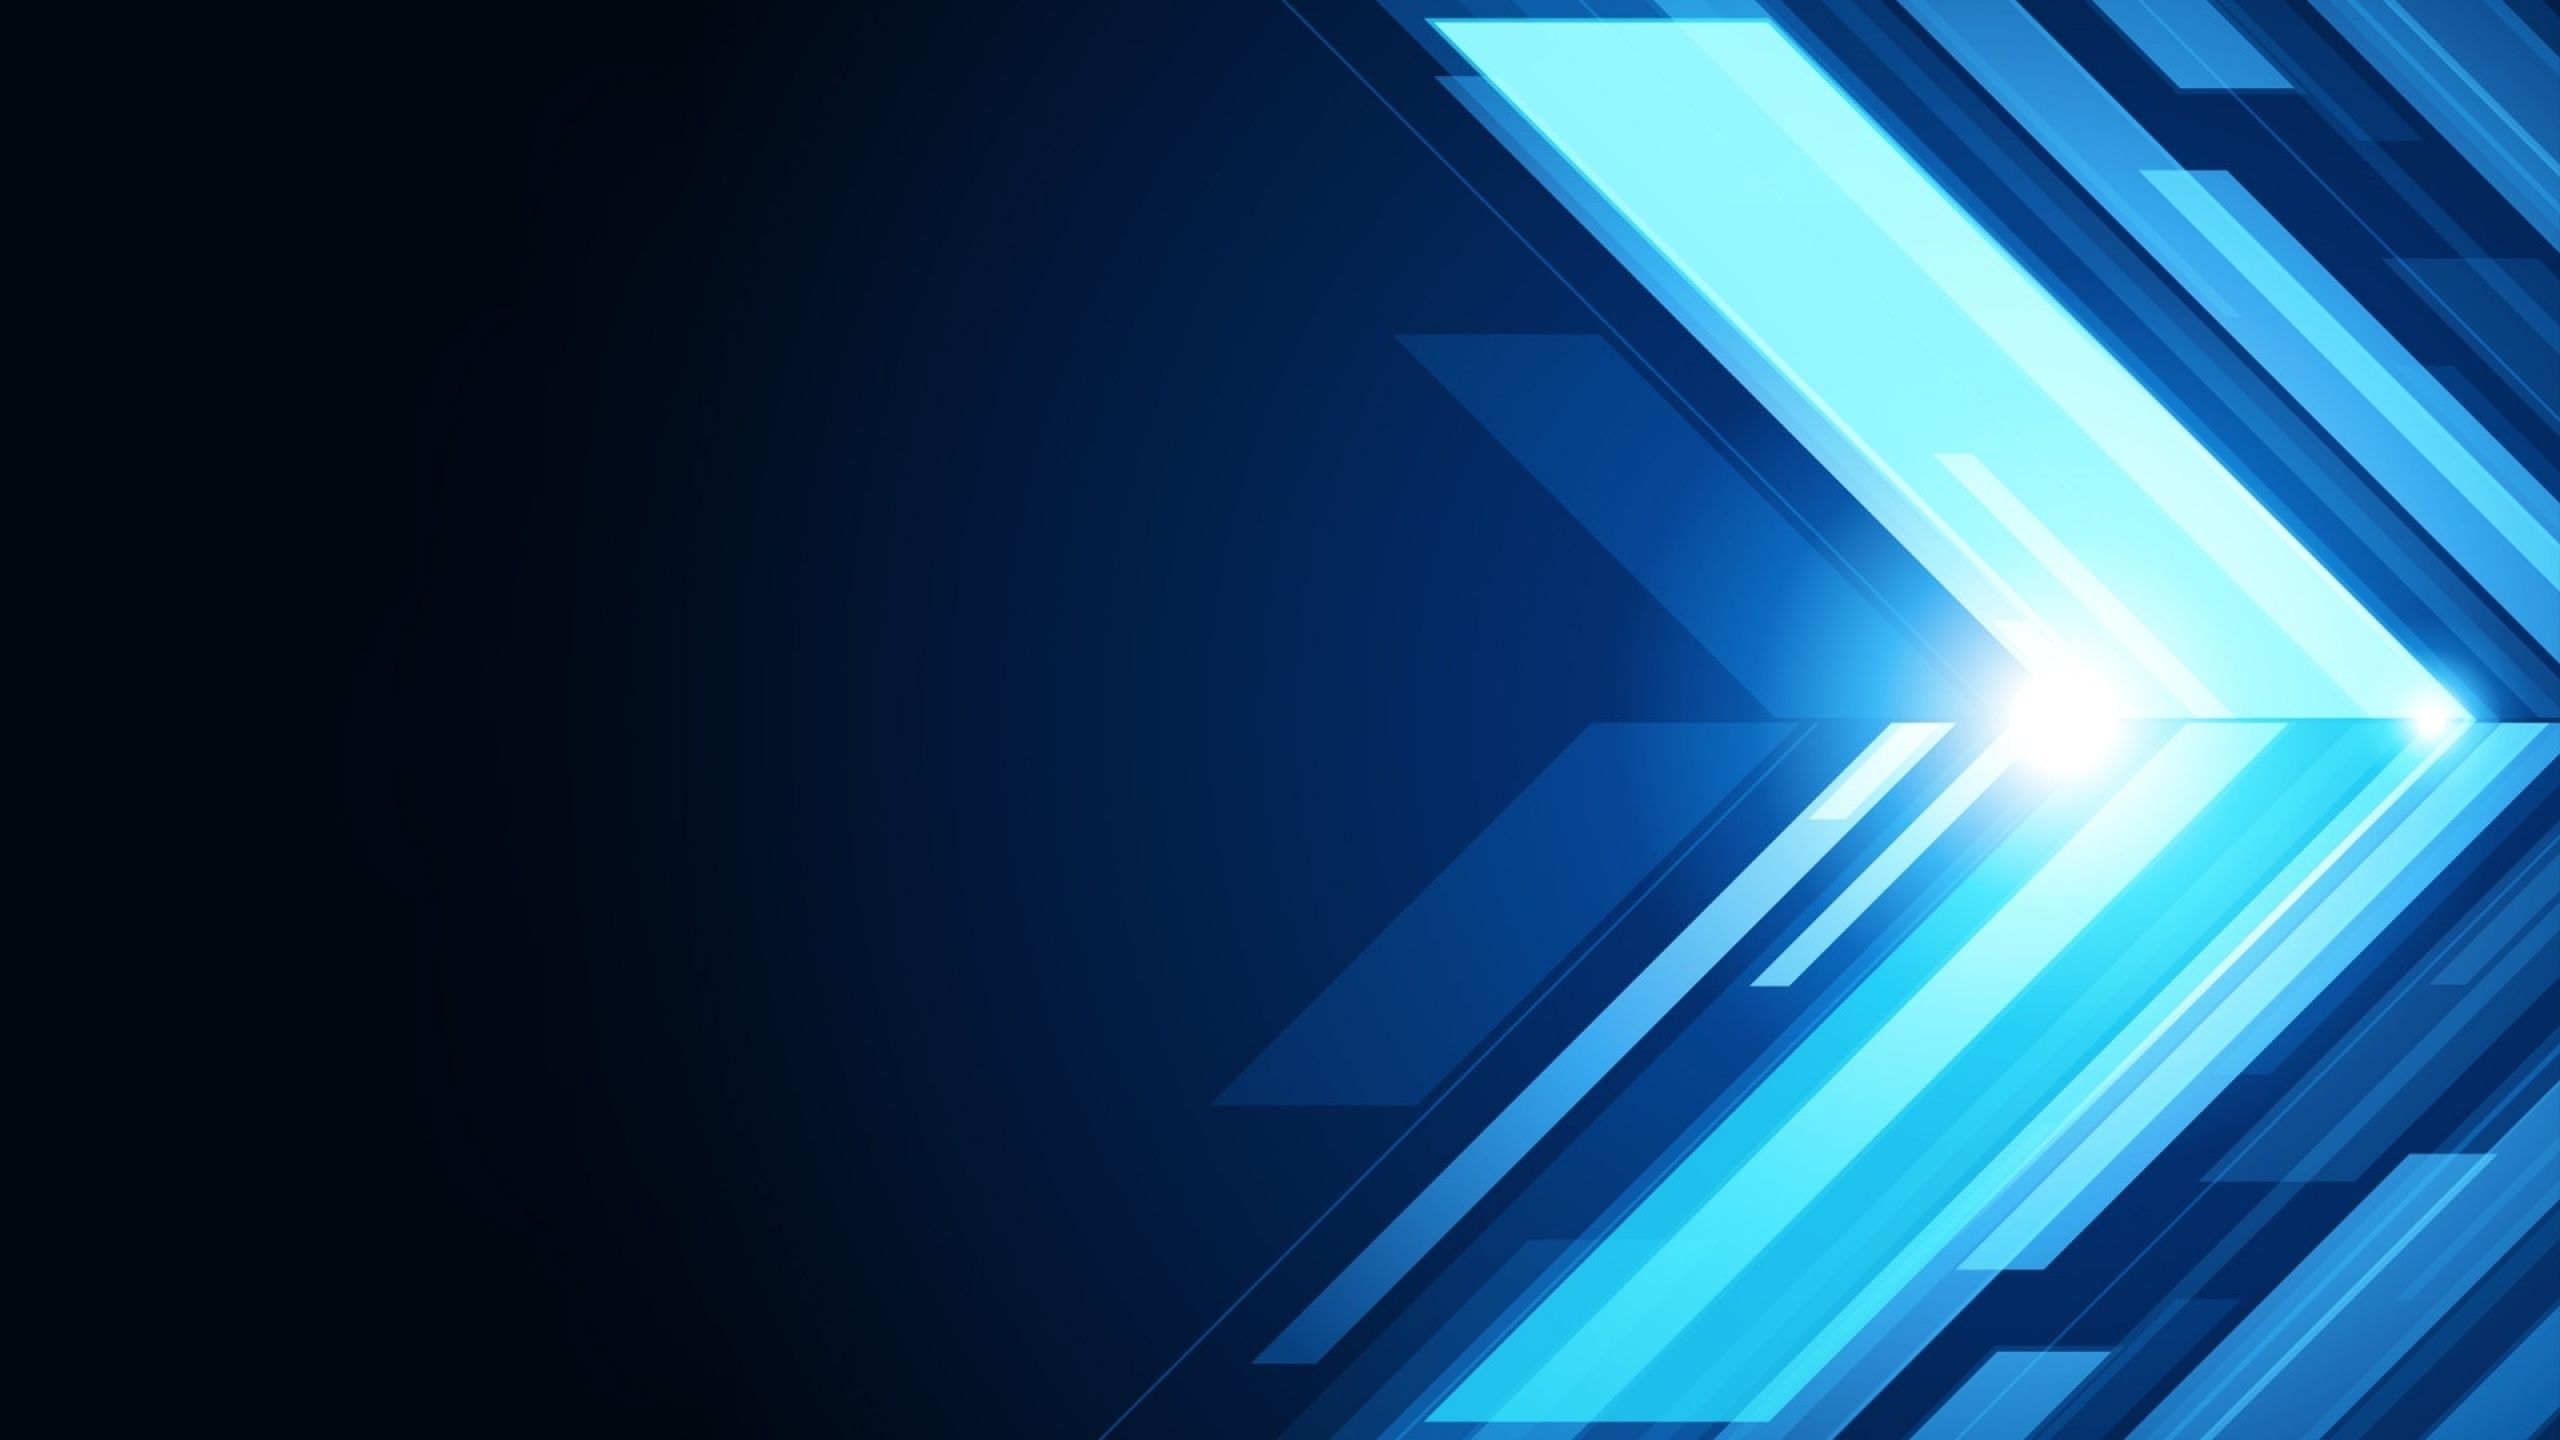 2560x1440 Blue Wallpapers Top Free 2560x1440 Blue Backgrounds Wallpaperaccess